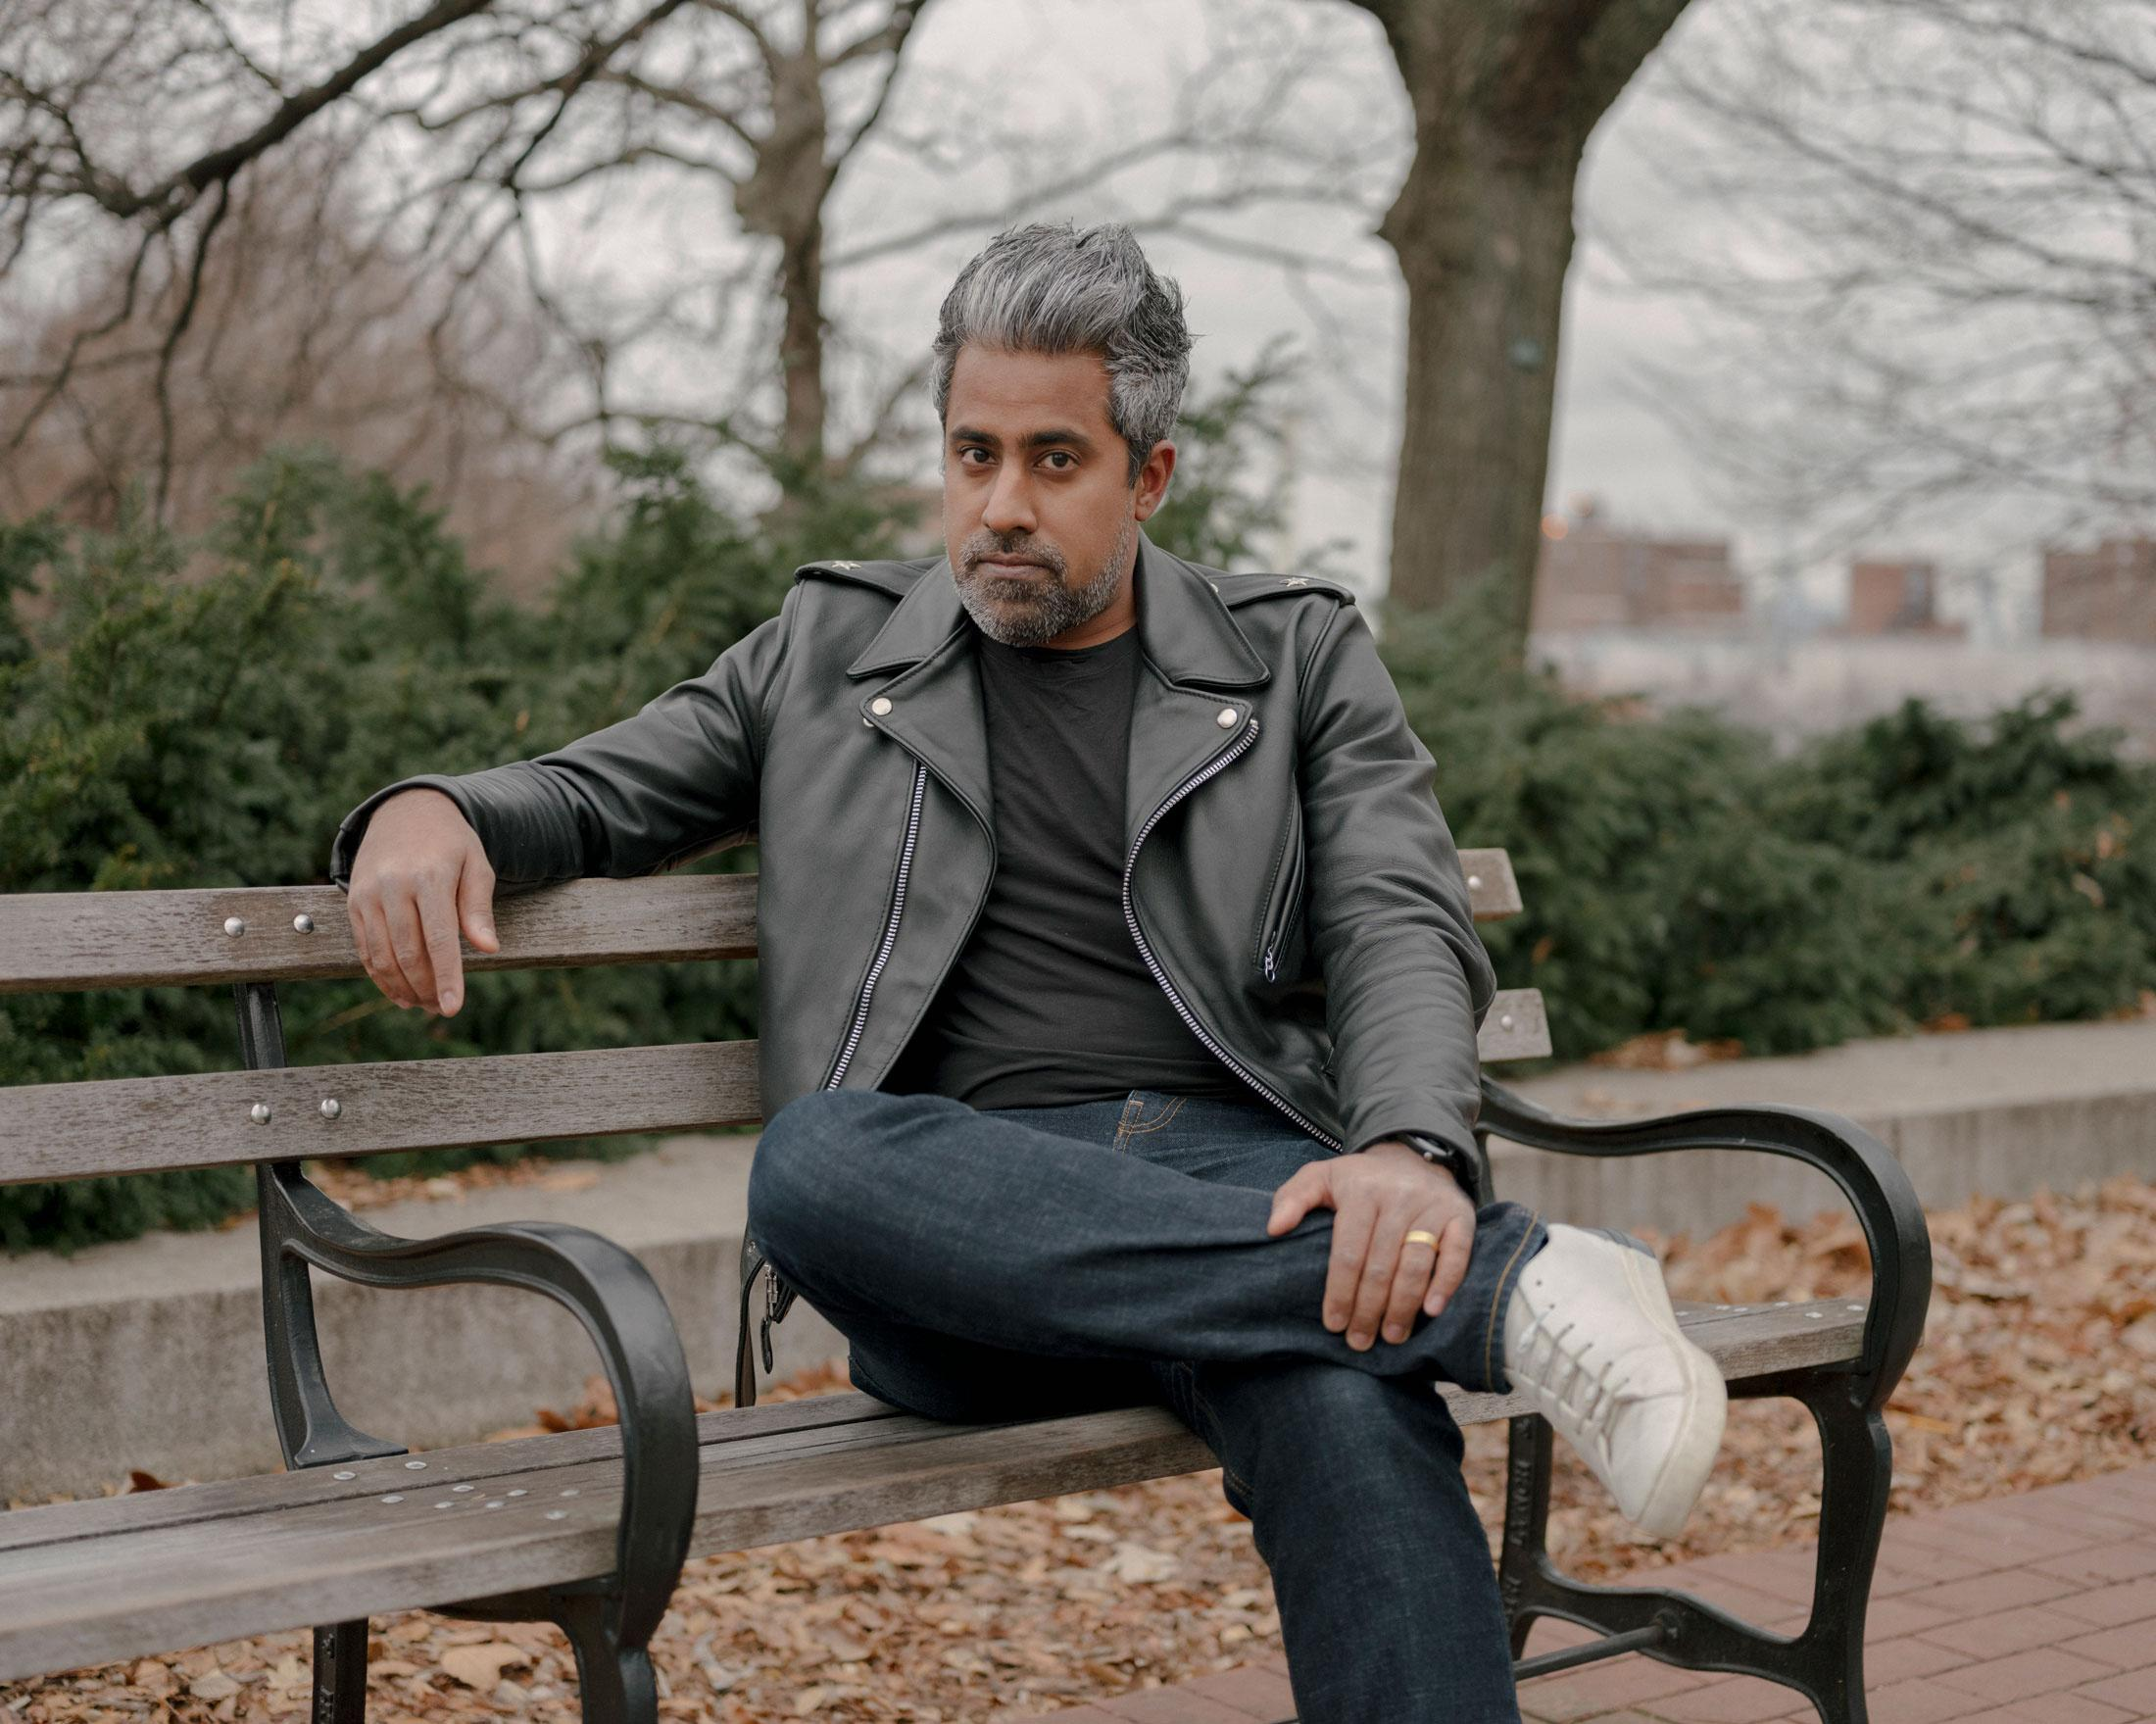 Anand Giridharadas on elite do-gooding: 'Many of my friends are drunk on dangerous BS'